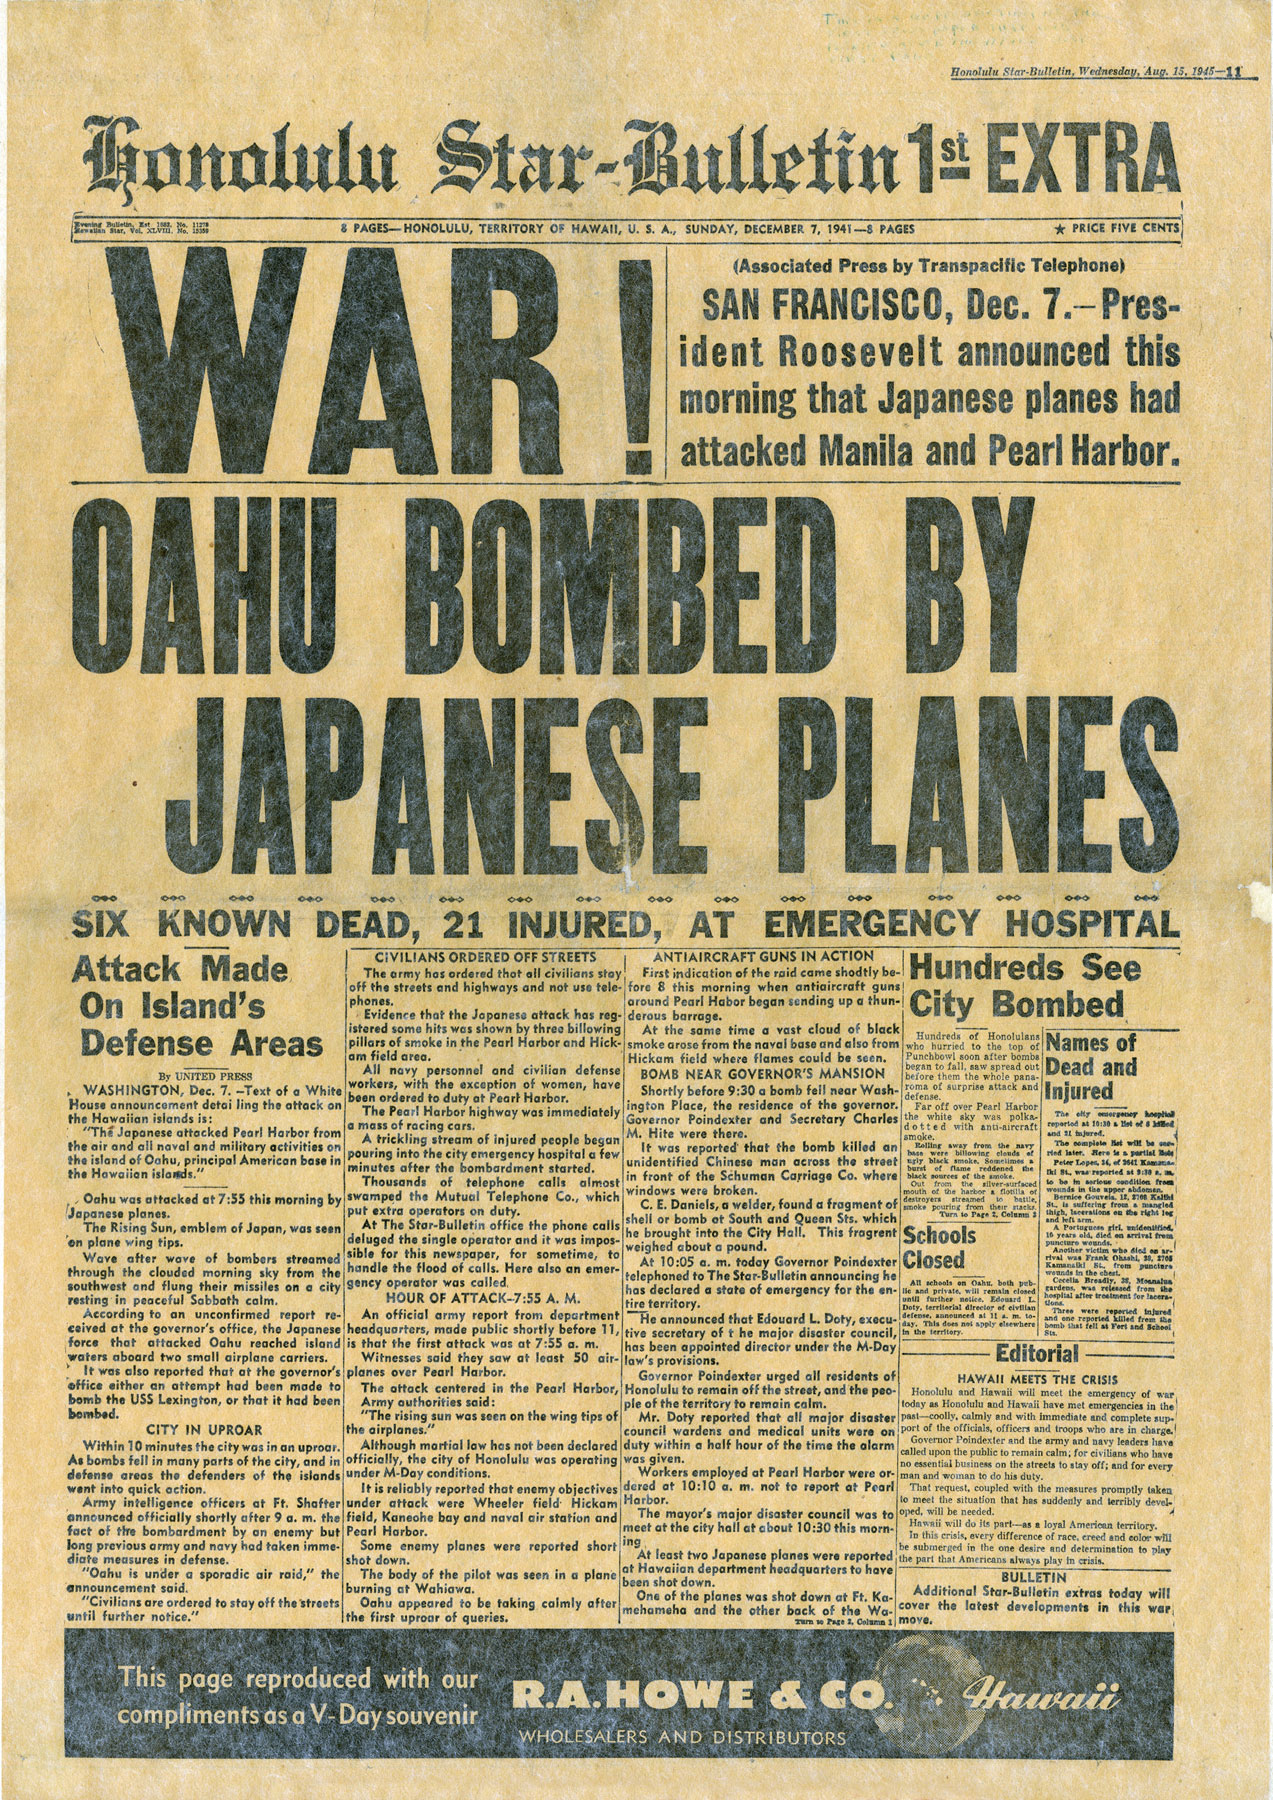 The Honolulu Star Bulletin's newspaper headline announced war the day of the Pearl Harbor attacks in Honolulu, Hawaii, Dec. 7, 1941. The attacks shed light on the necessity of effective military communications, leading to the innovations and inventions of today's space and cyberspace warfighting domains.